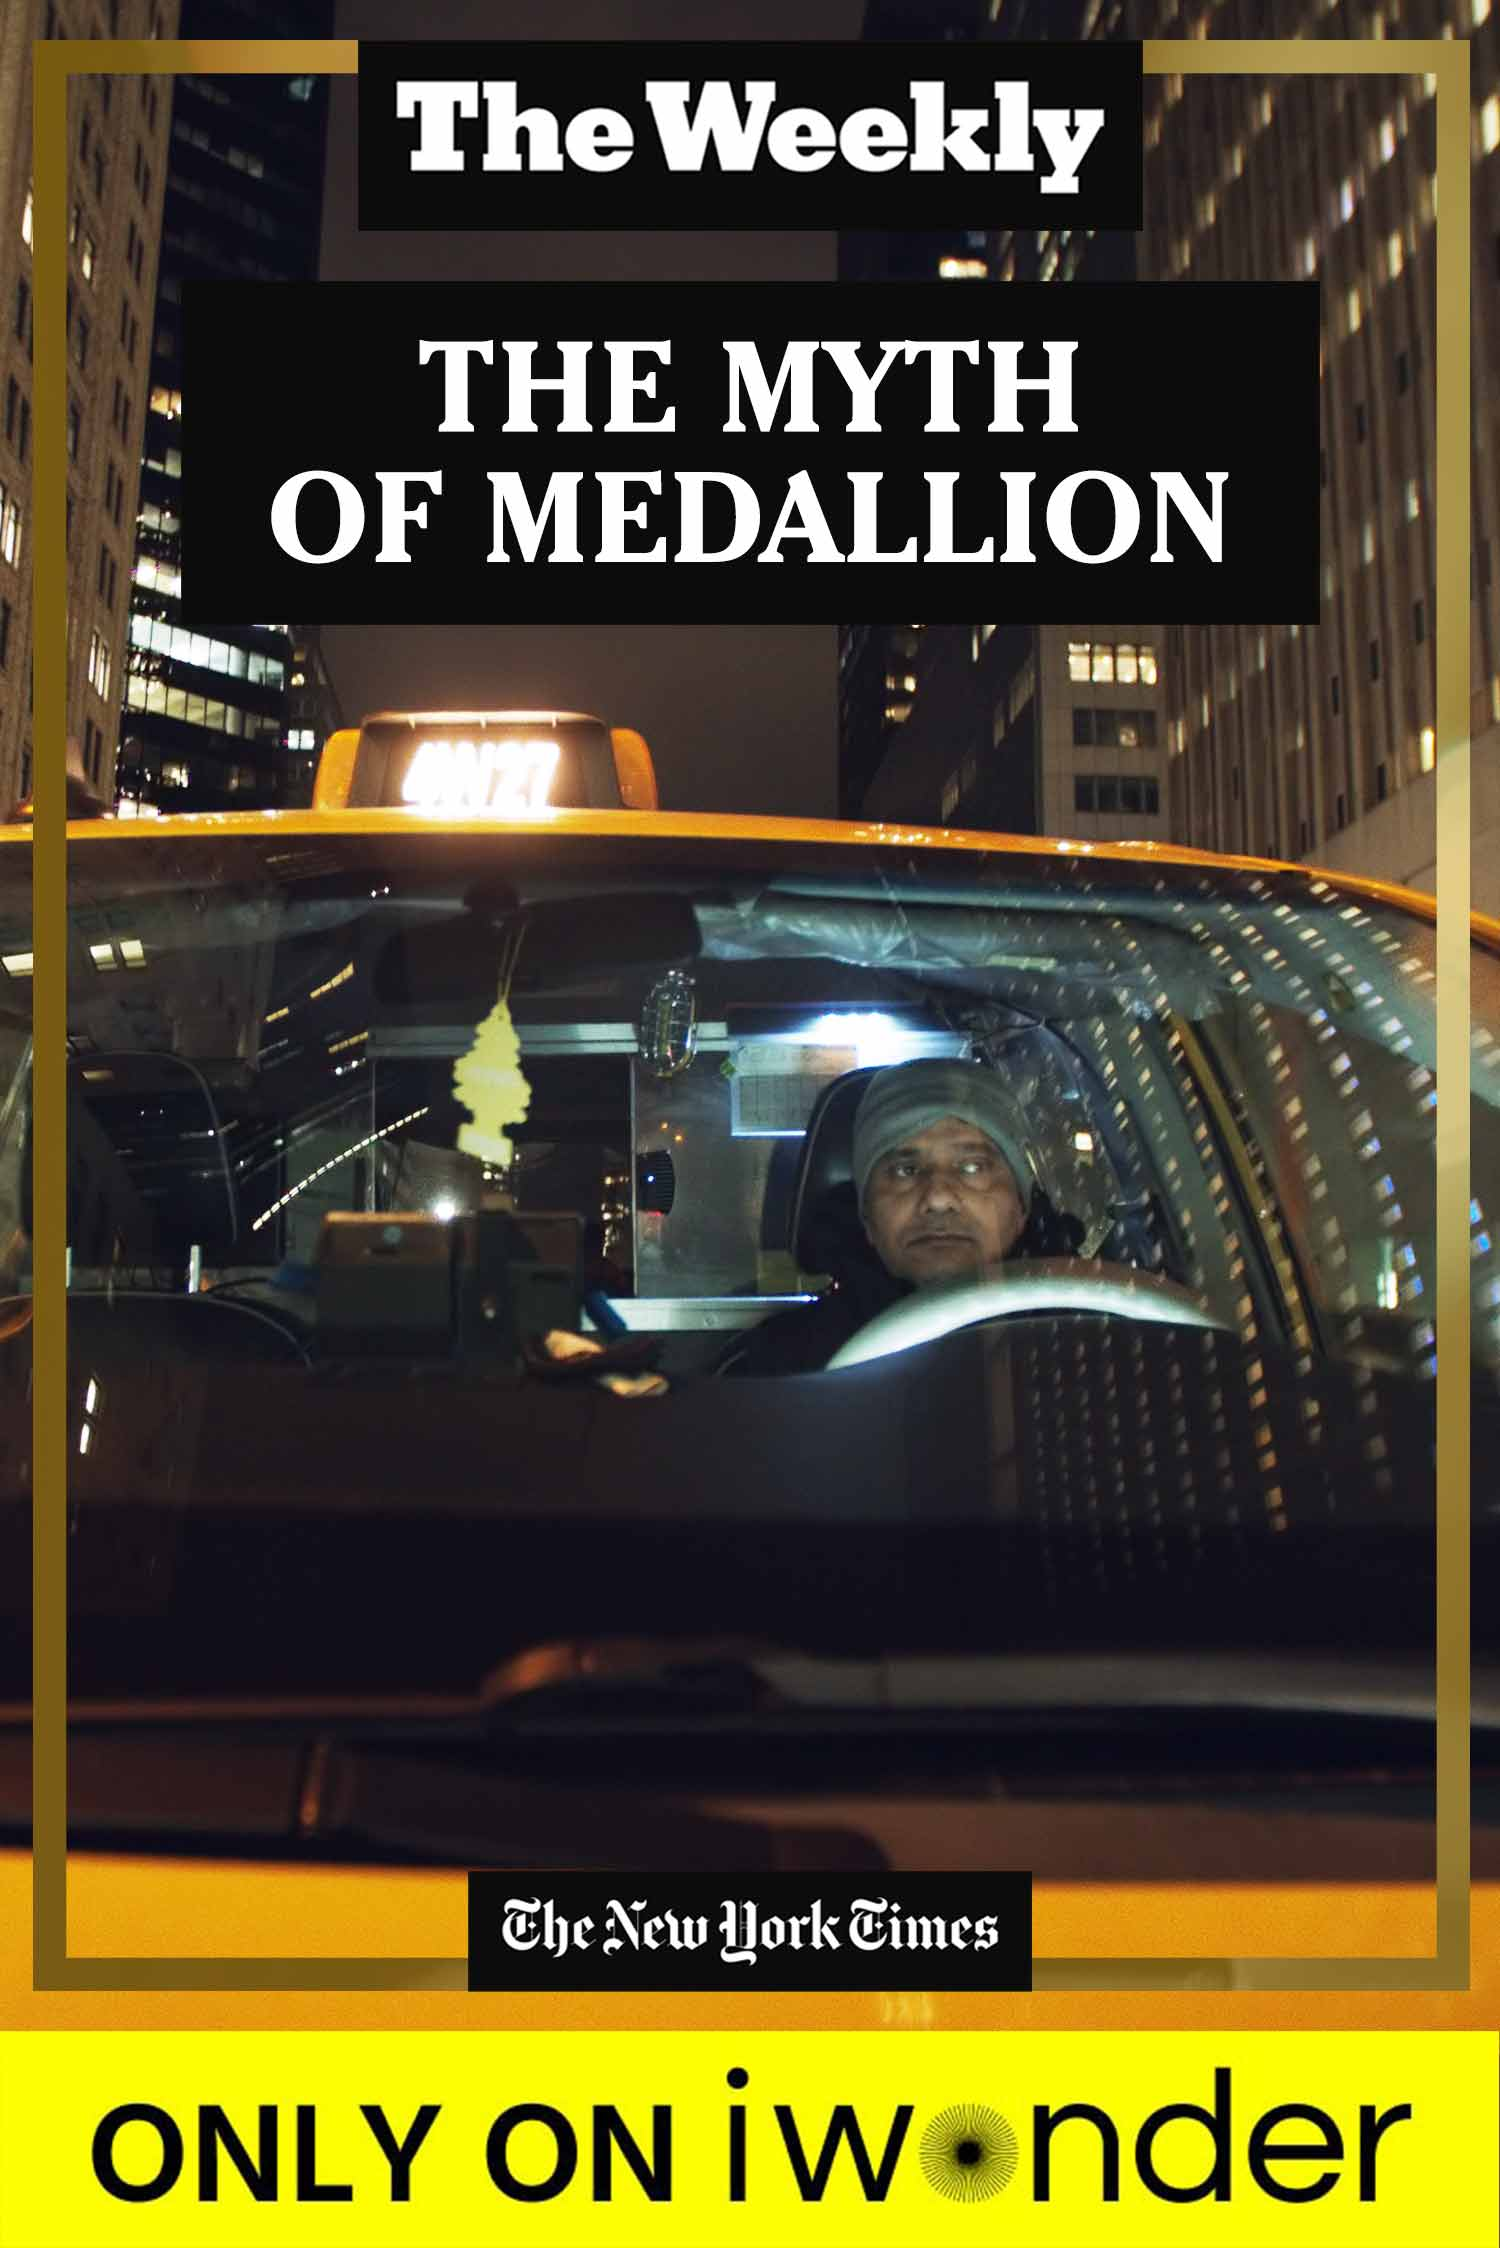 The Weekly: The Myth of the Medallion